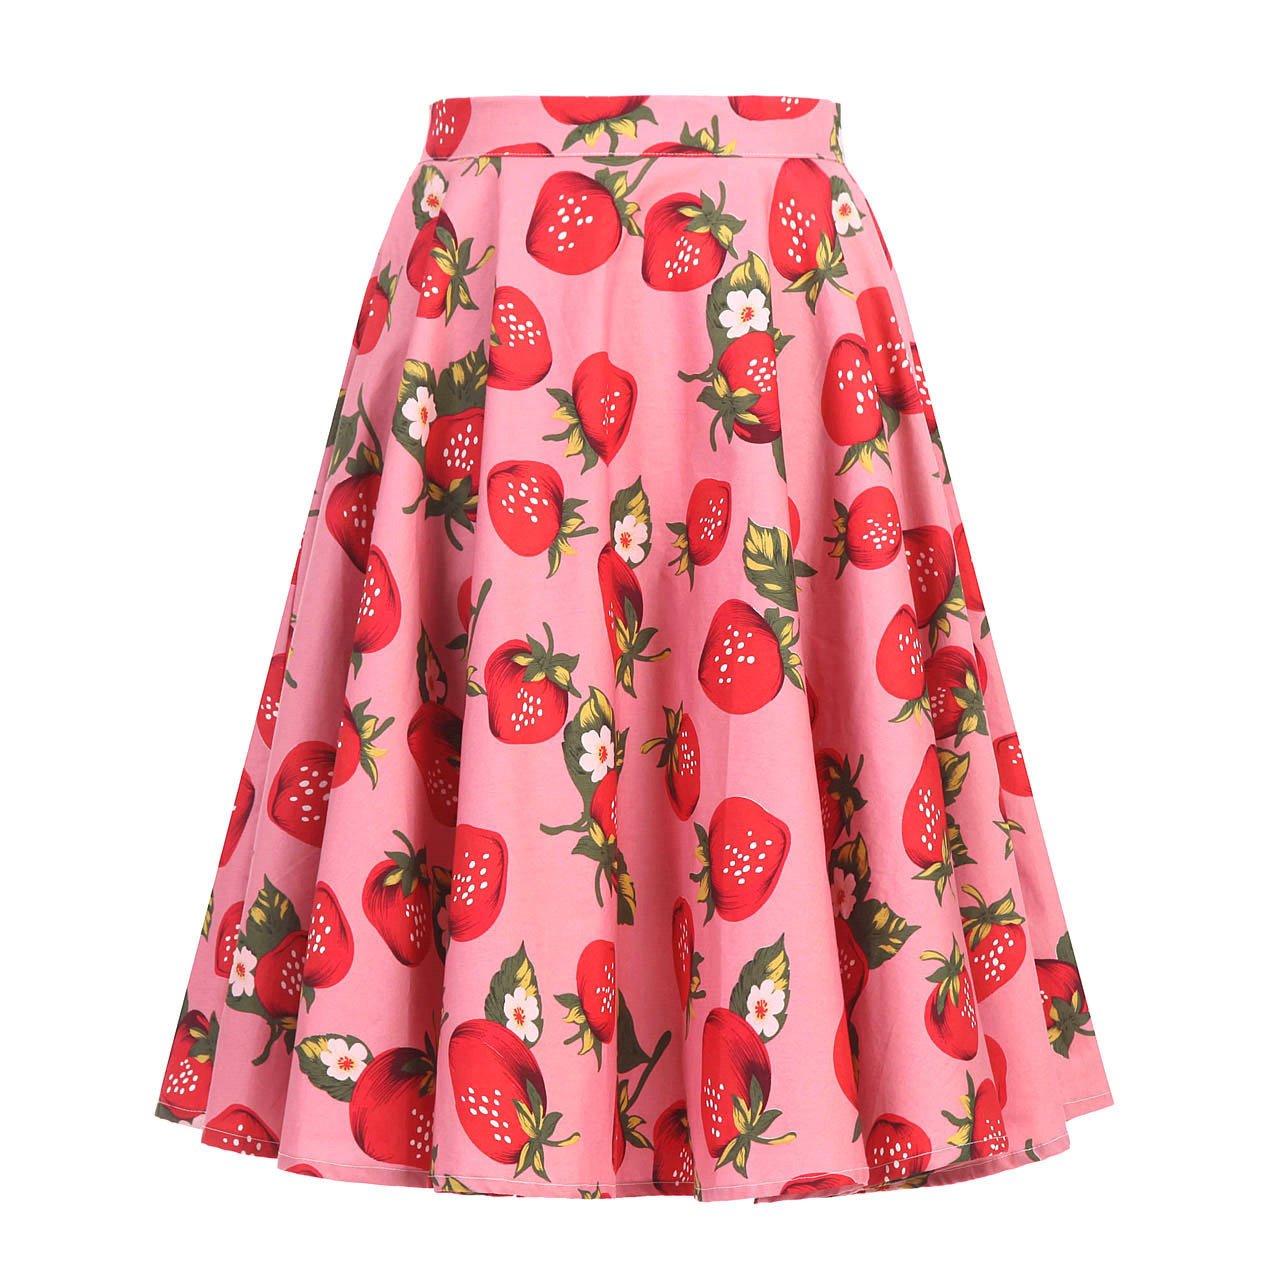 Rockabilly Big Swing 50s Floral Vintage Skirt Plus Size Women Summer Blue White Black Cherry Print Polka Dots High Waist Skirts image